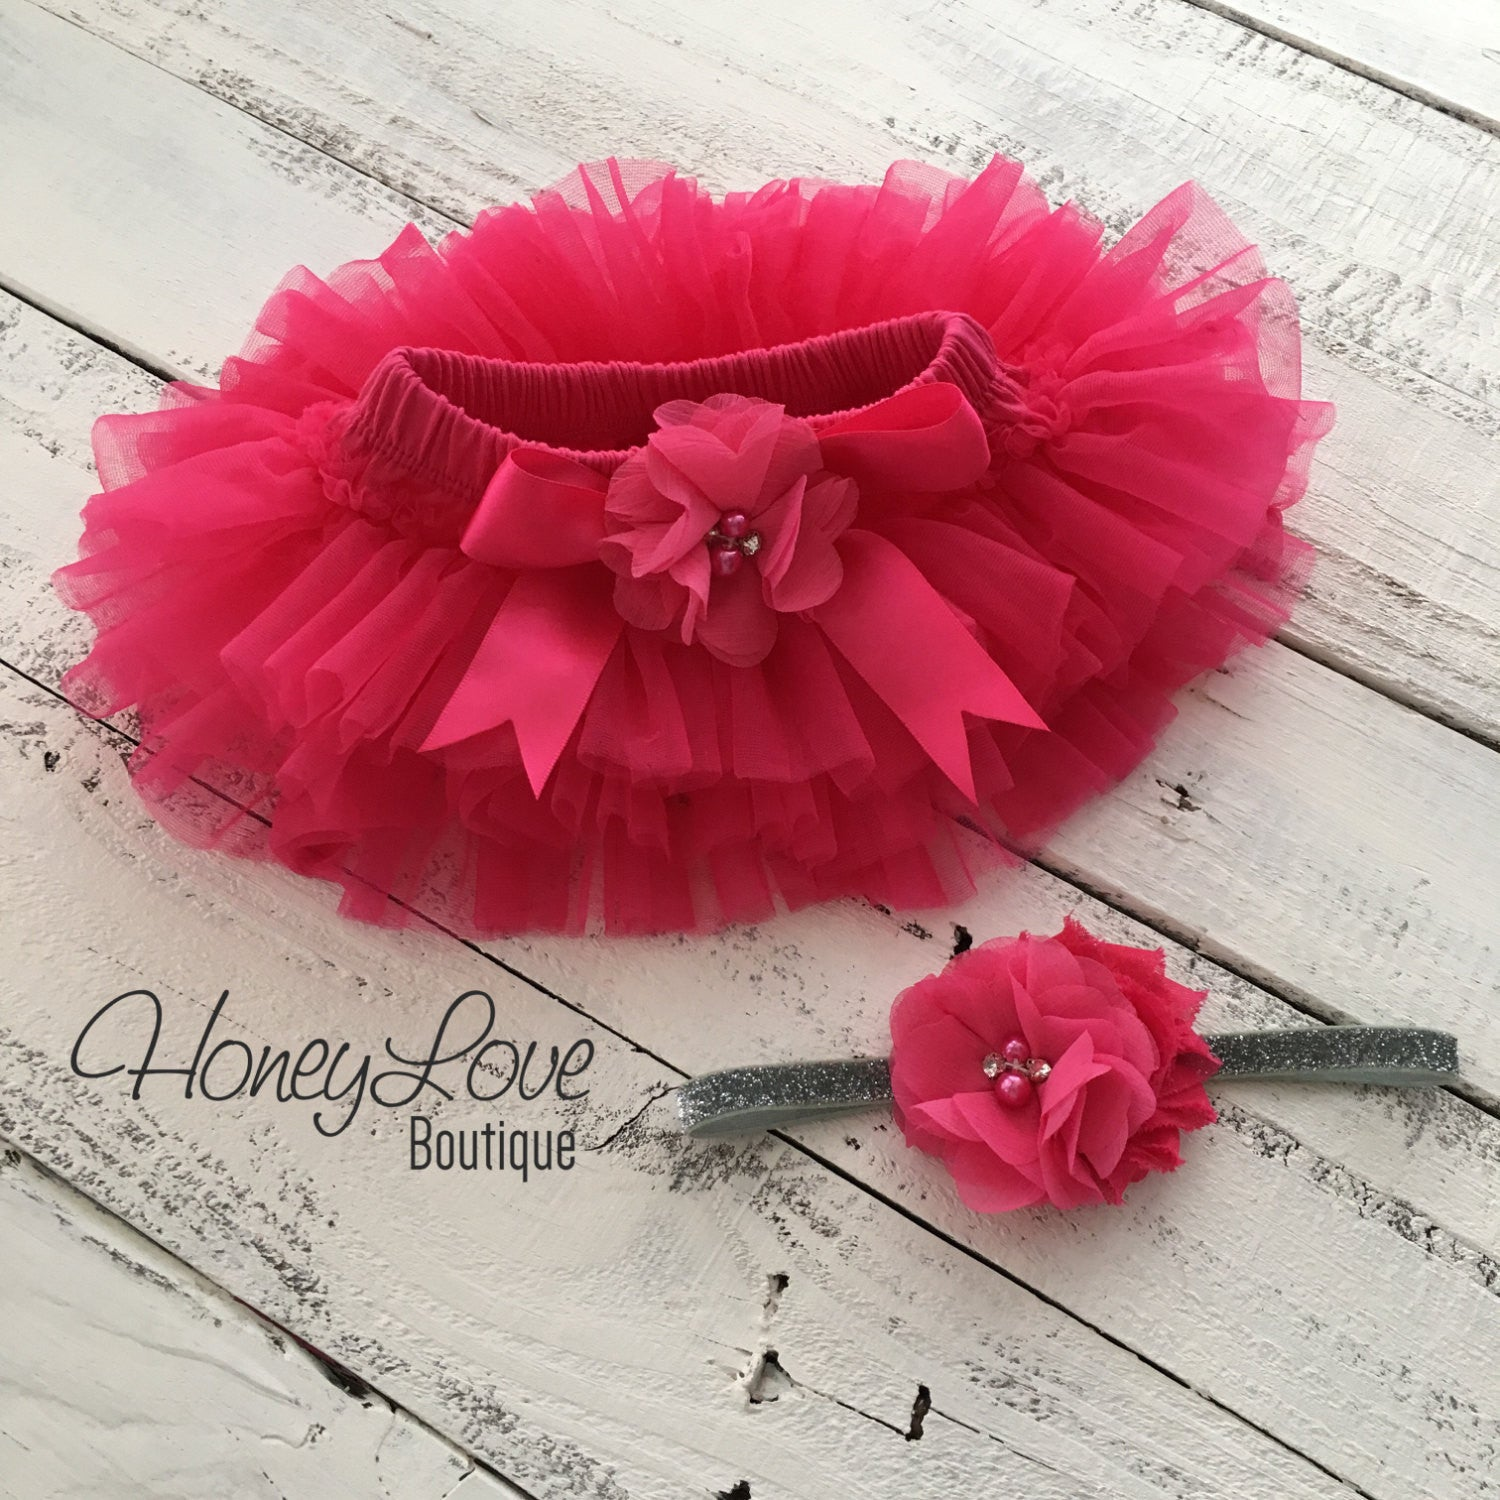 940d3807a9 Watermelon Pink tutu skirt bloomers and silver glitter headband - embellished  bloomer - HoneyLoveBoutique ...